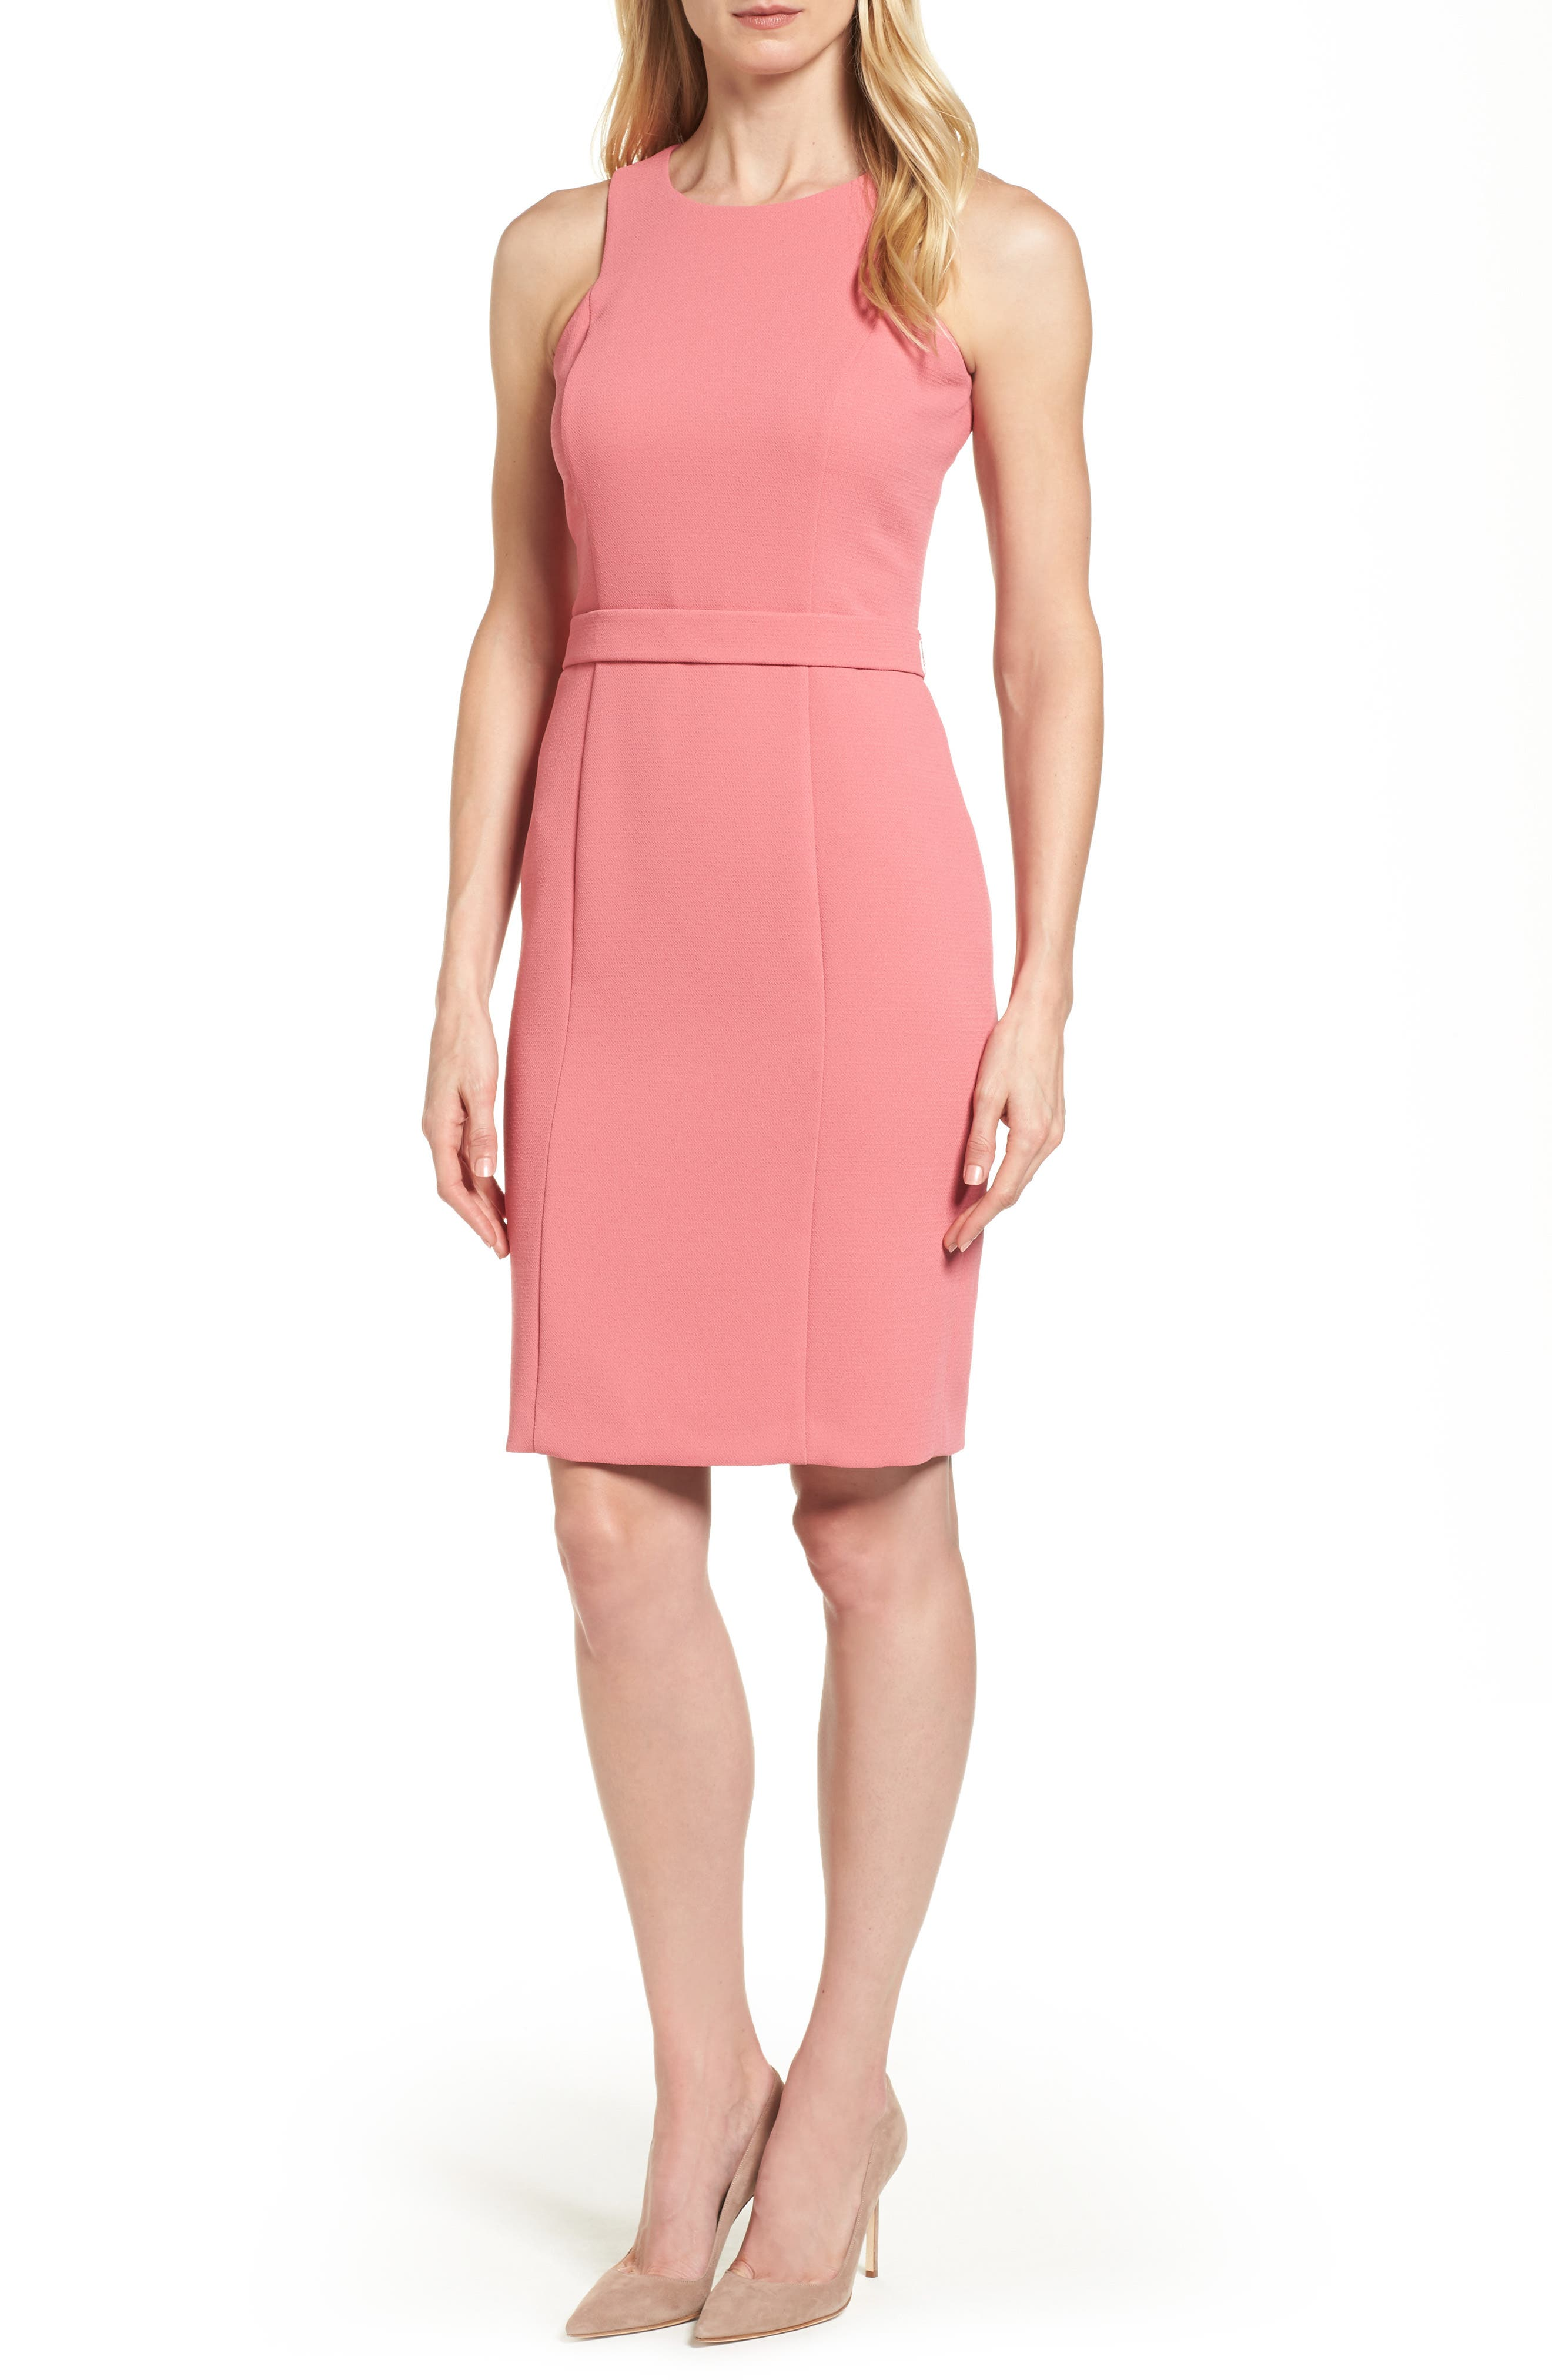 Dalanea Belted Sheath Dress,                         Main,                         color, Raspberry